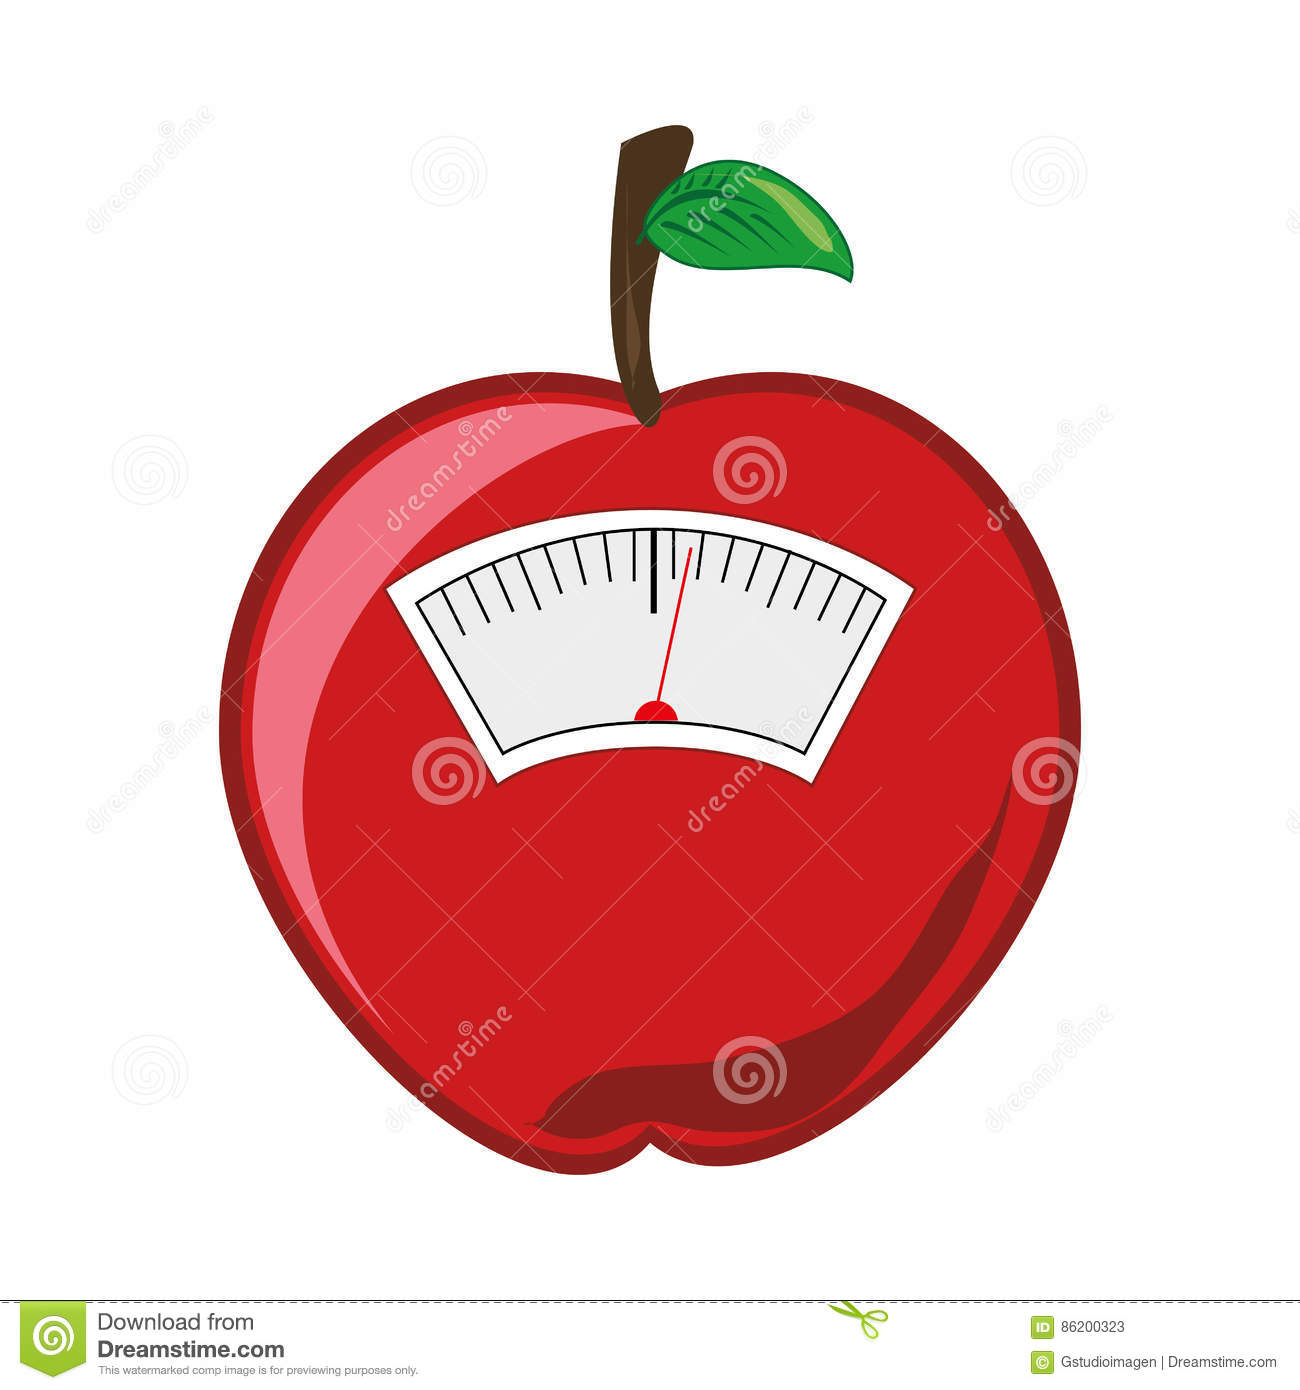 Color Silhouette With Scales For Weight Control In Shape Of Apple.